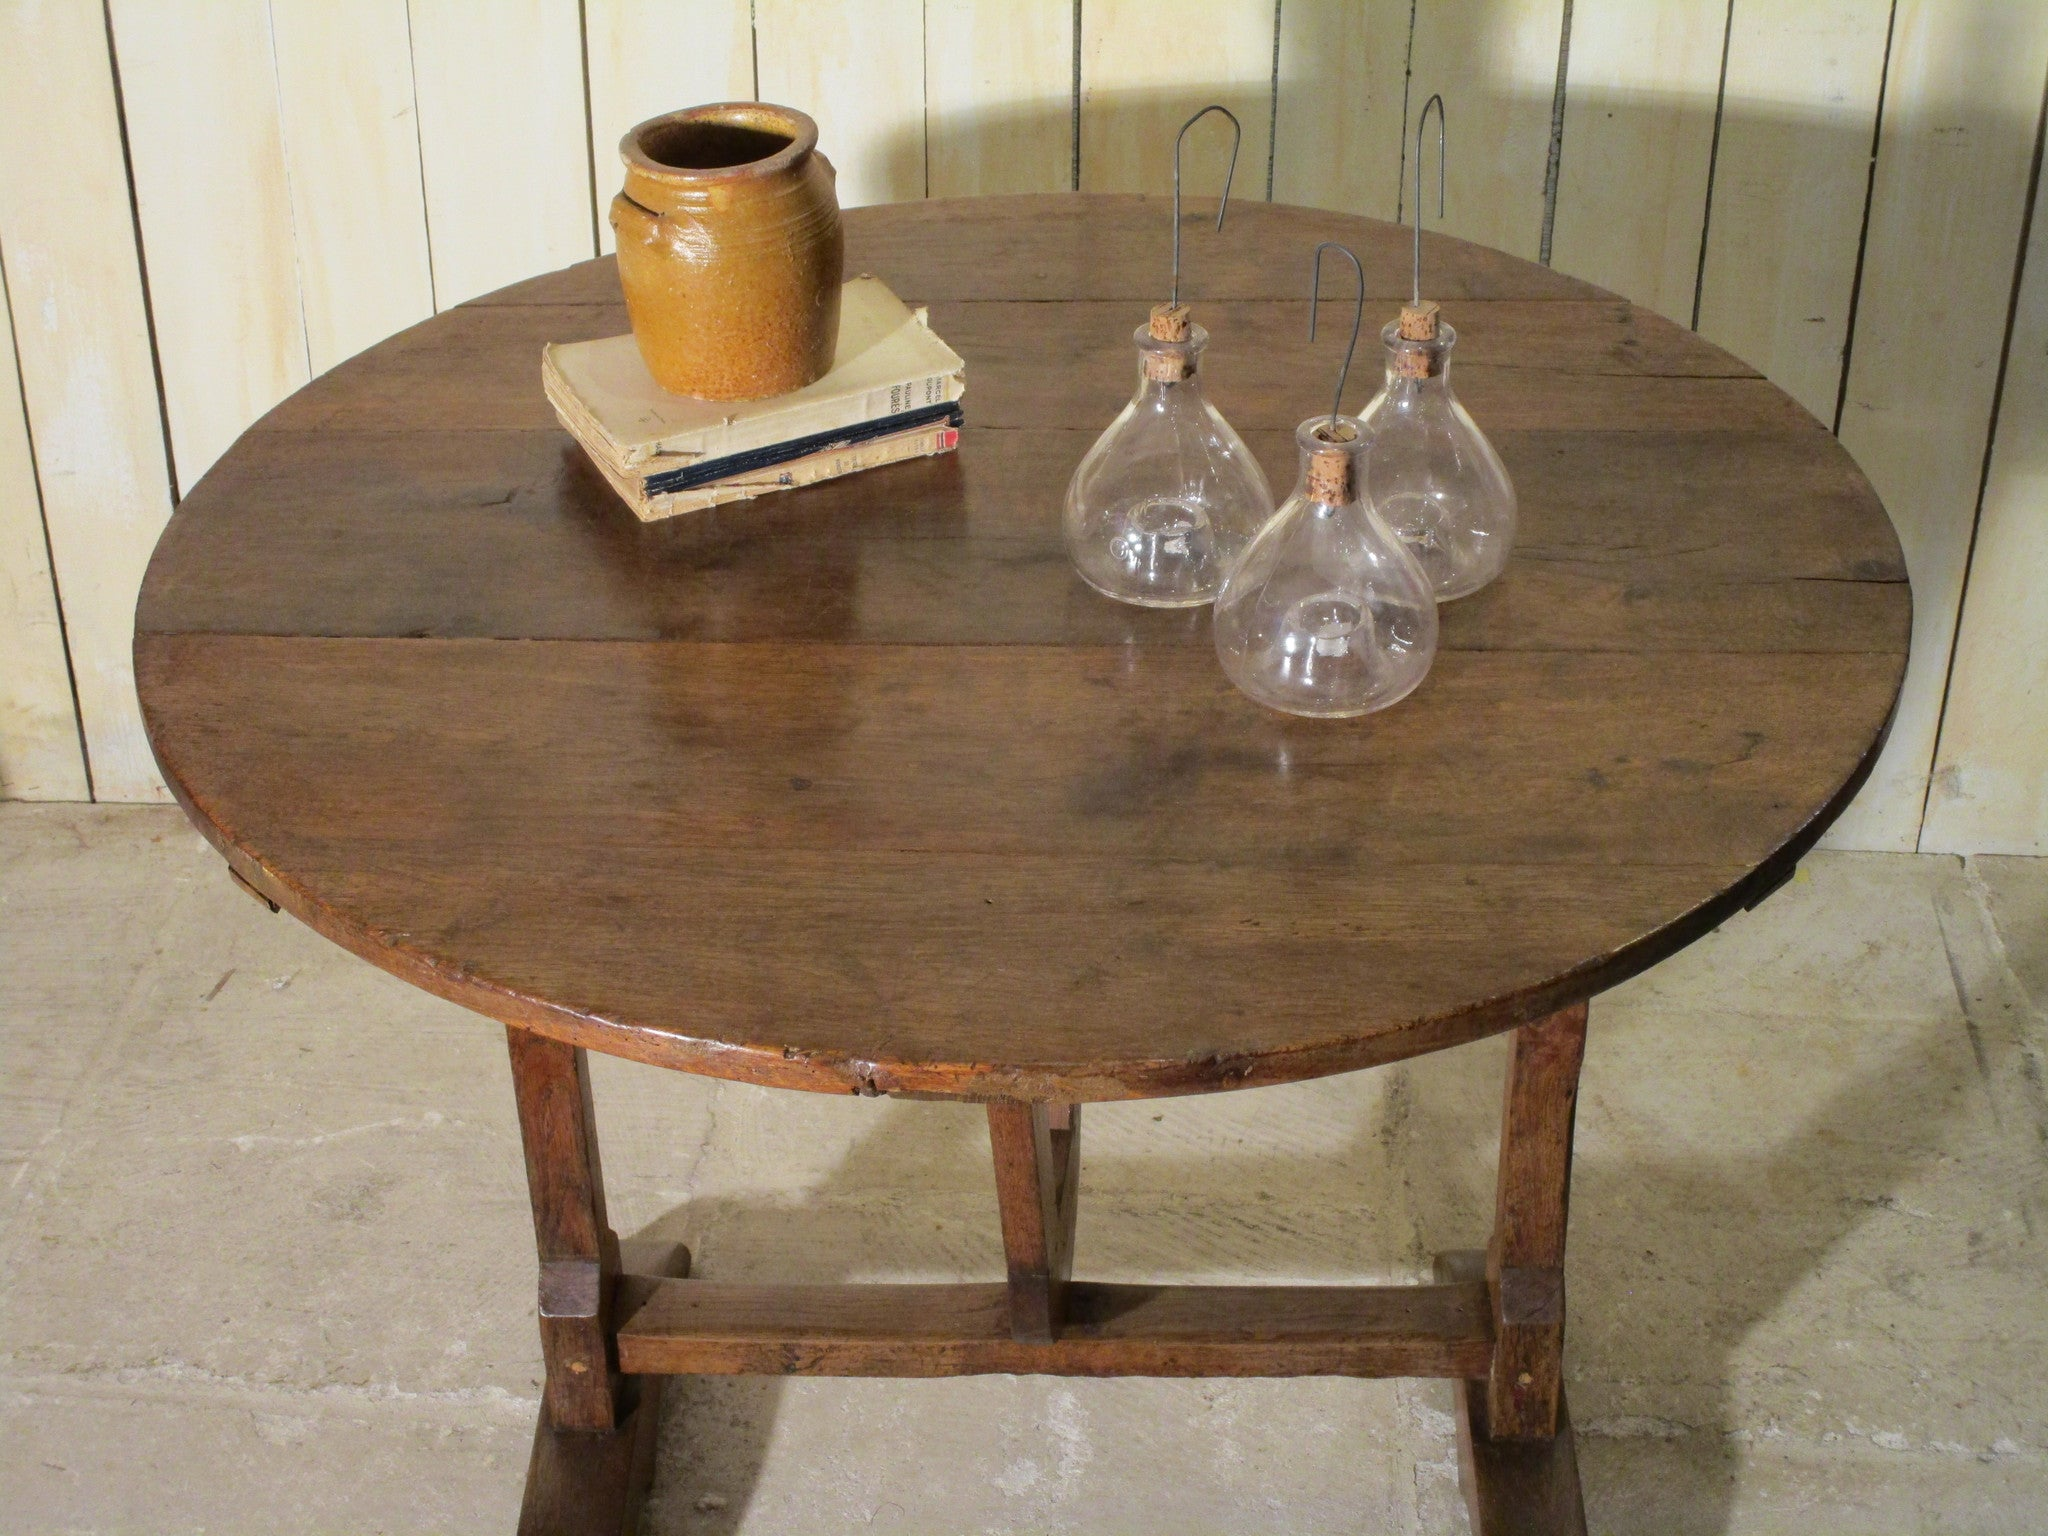 19th century French oak vigneron table